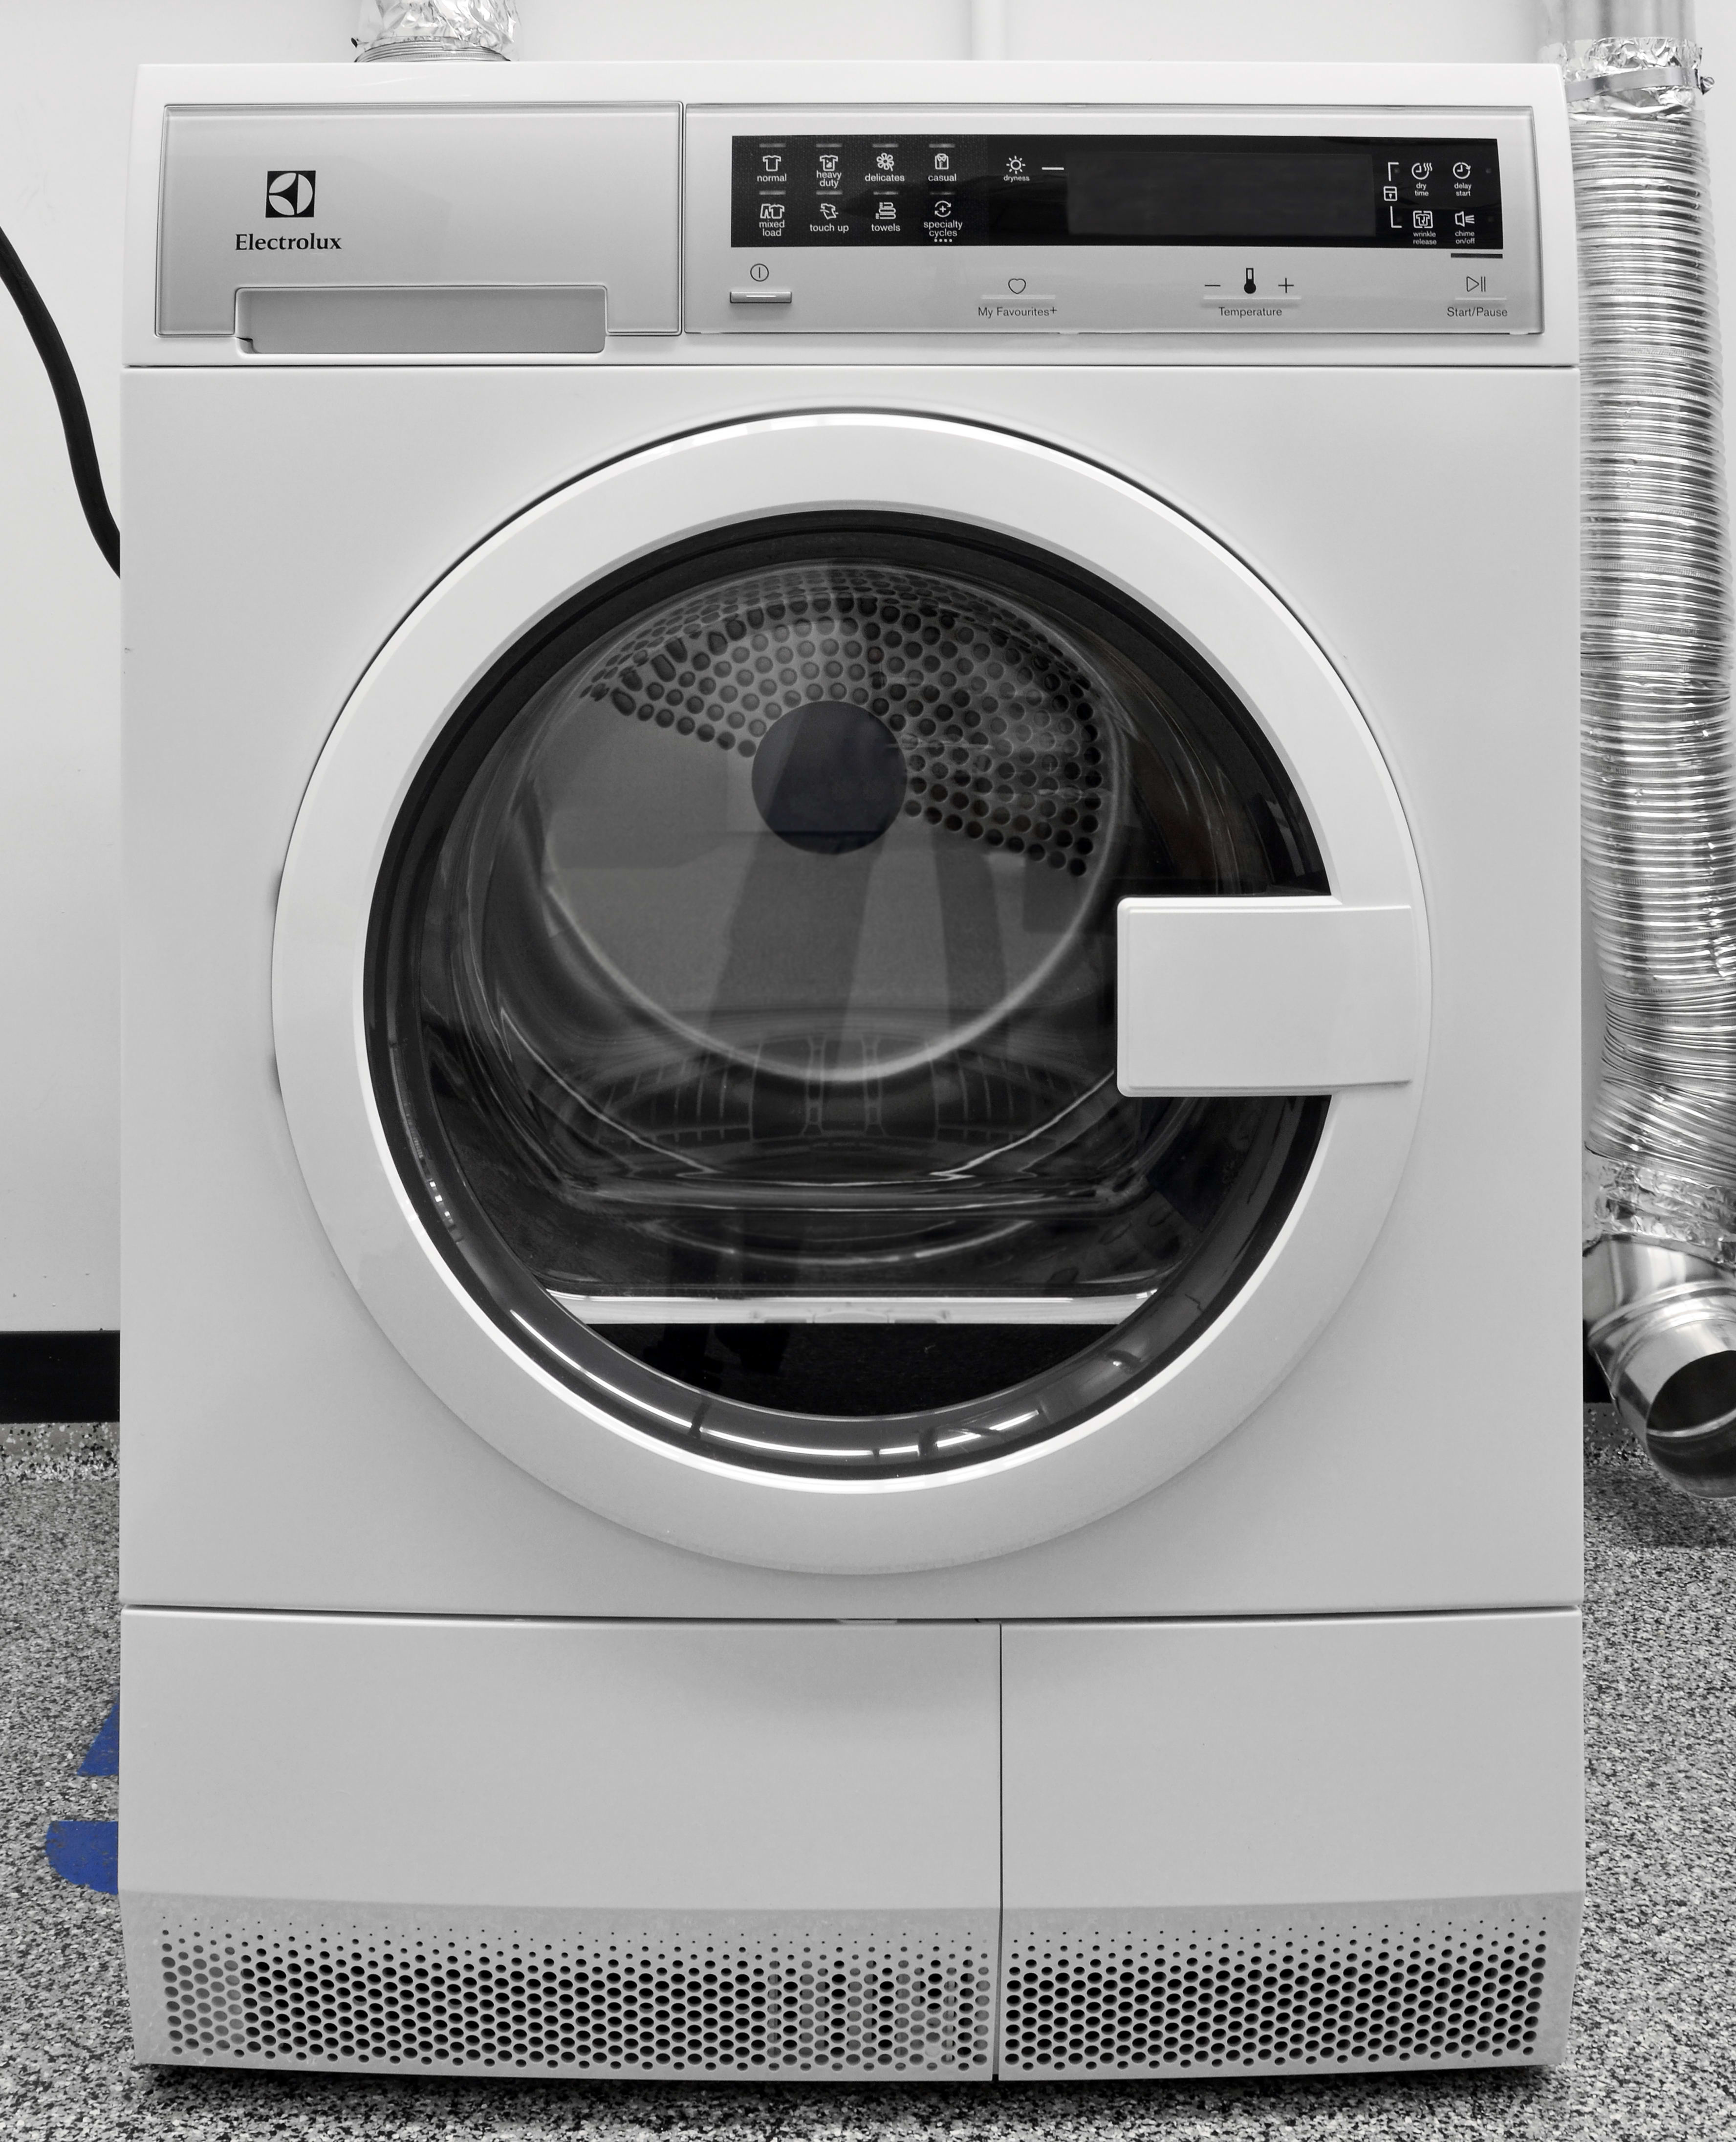 Stylish and affordable, the Electrolux EIED200QSW pushes compact dryers in a good direction.